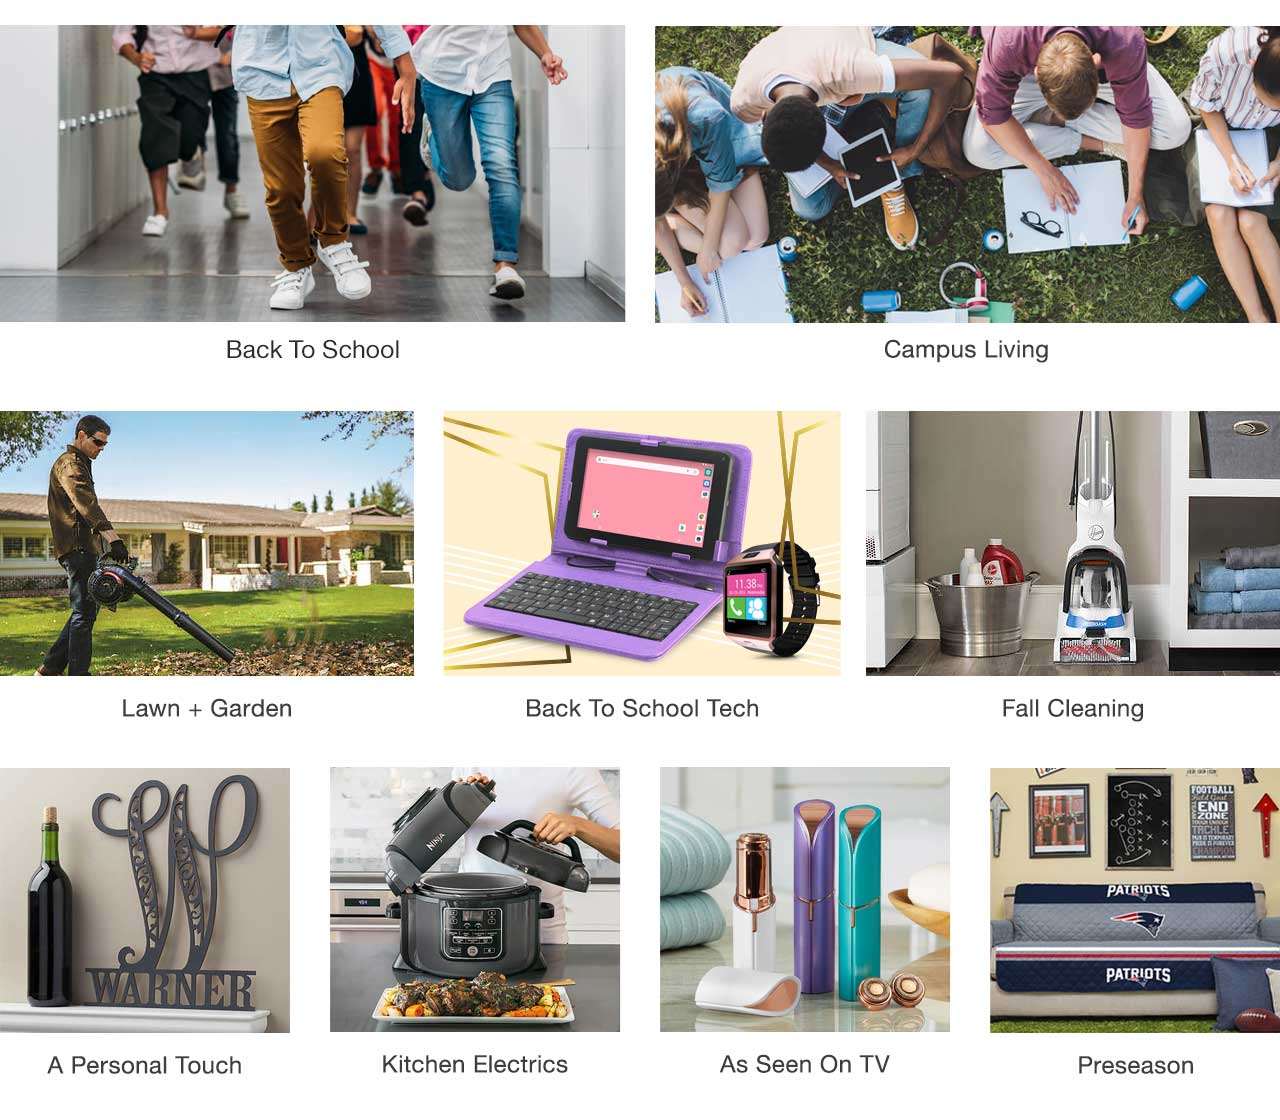 Shop Back to School and everything you need for campus living. Get tools for the perfect lawn and garden, as well as housekeeping and organization for the home. find personalized items, kitchen electrics, as seen on TV and NFL items today, pay later with Stoneberry Credit.